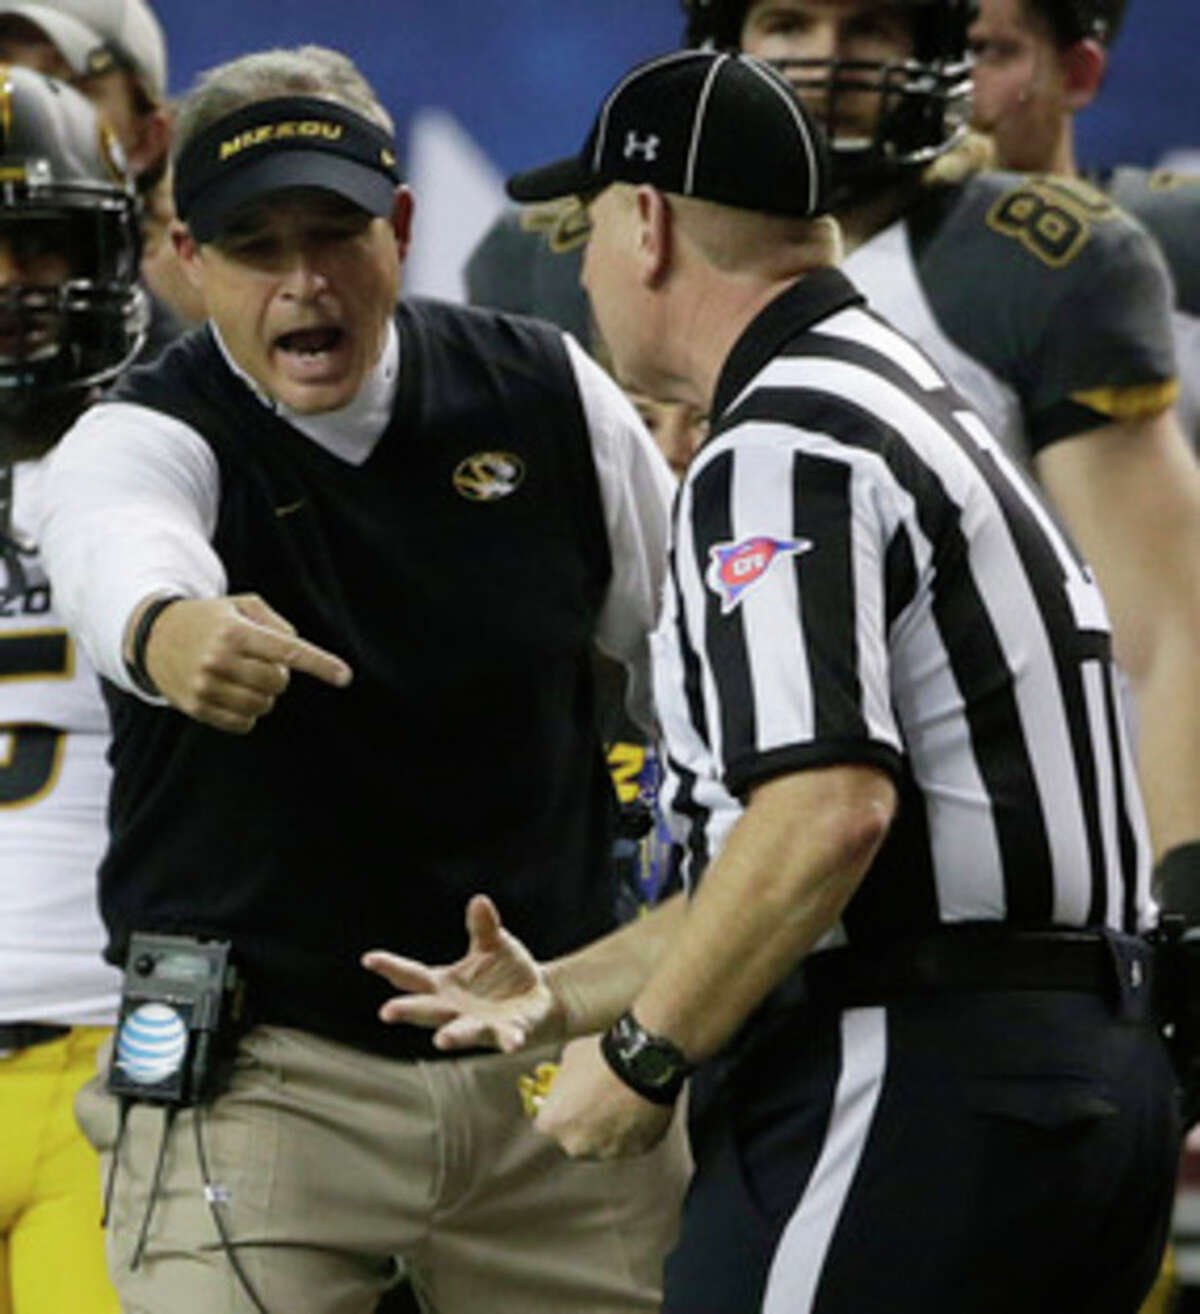 Missouri head coach Gary Pinkel speaks with an official during the second half of the Southeastern Conference NCAA football championship game against Auburn, Saturday, Dec. 7, 2013, in Atlanta. (AP Photo/Dave Martin)